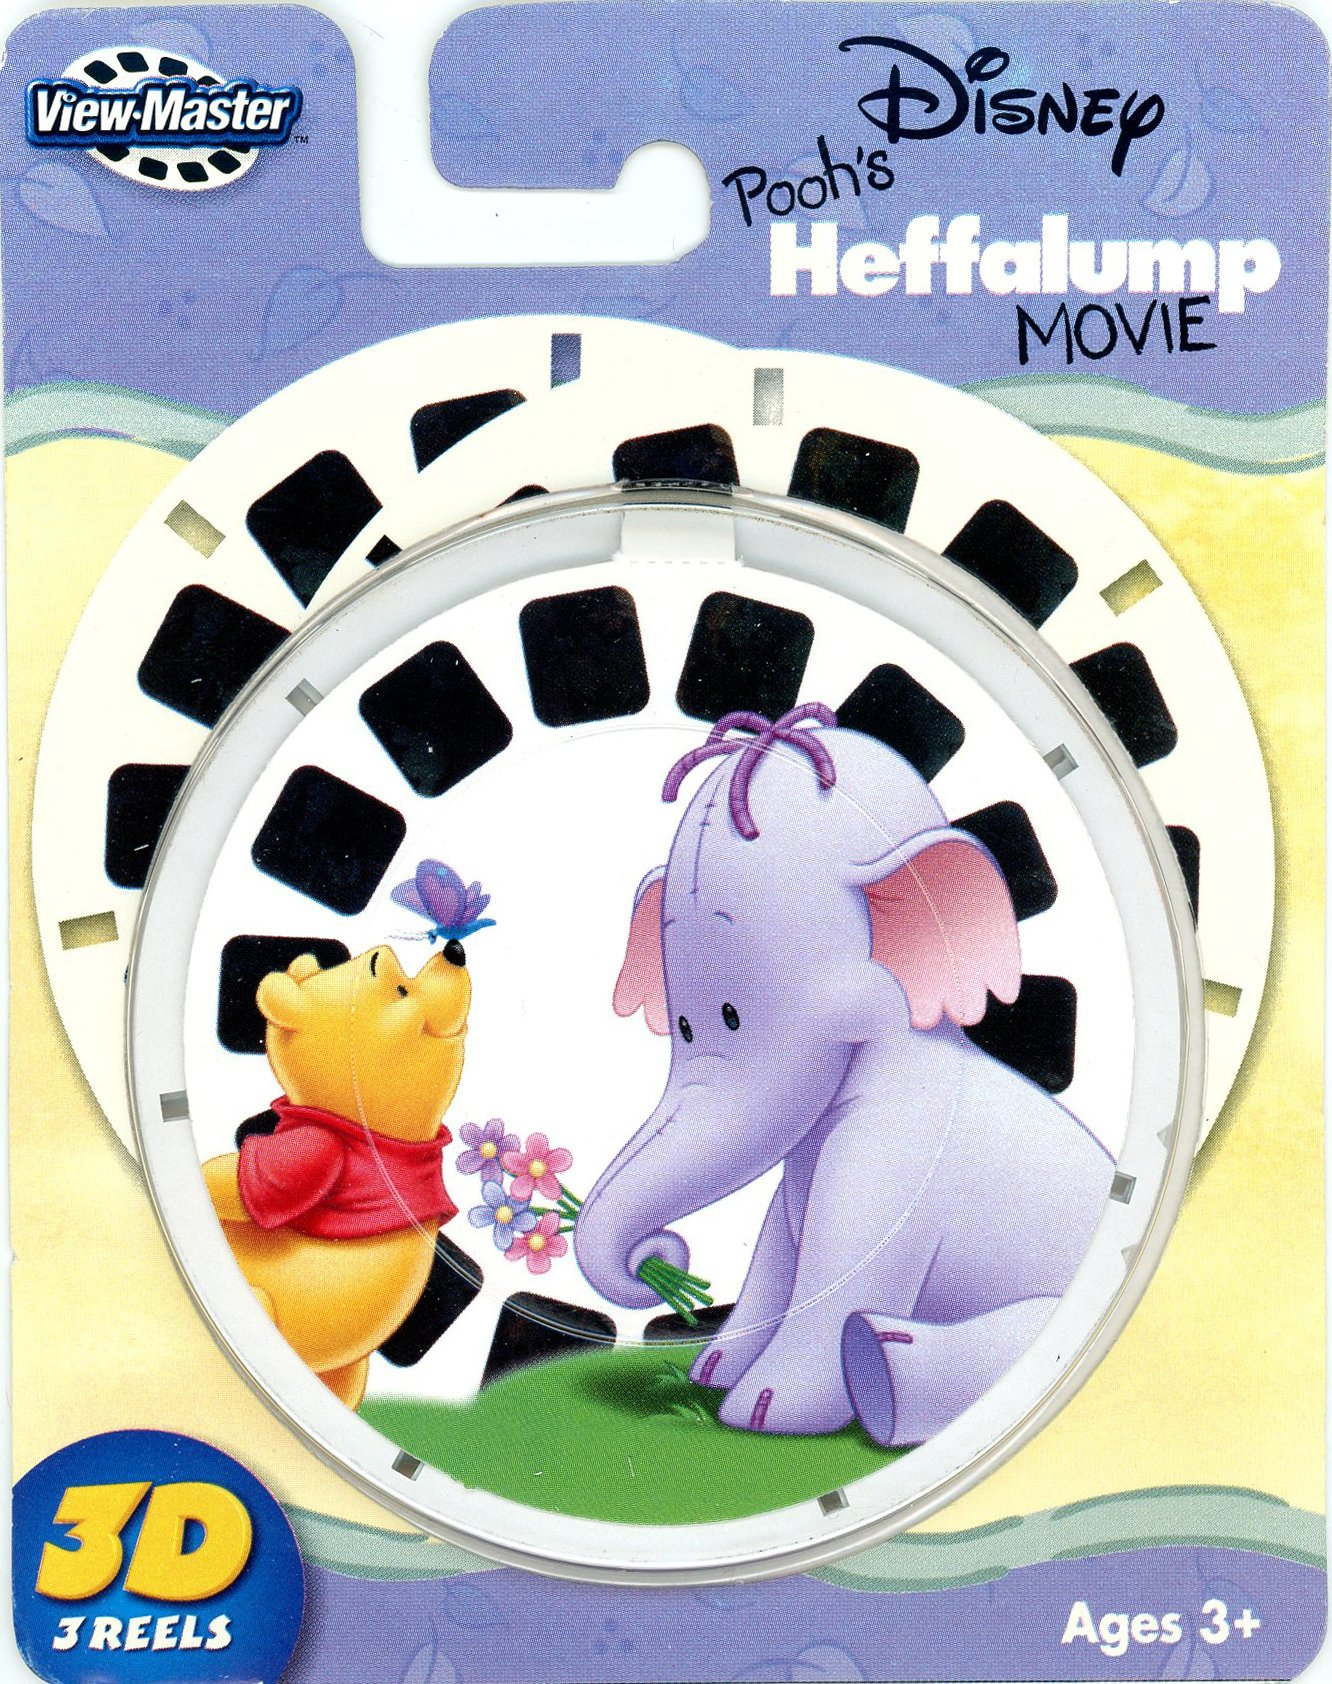 Winnie the Pooh - HEFFALUMP Movie - ViewMaster 3 Reel Set by 3Dstereo ViewMaster